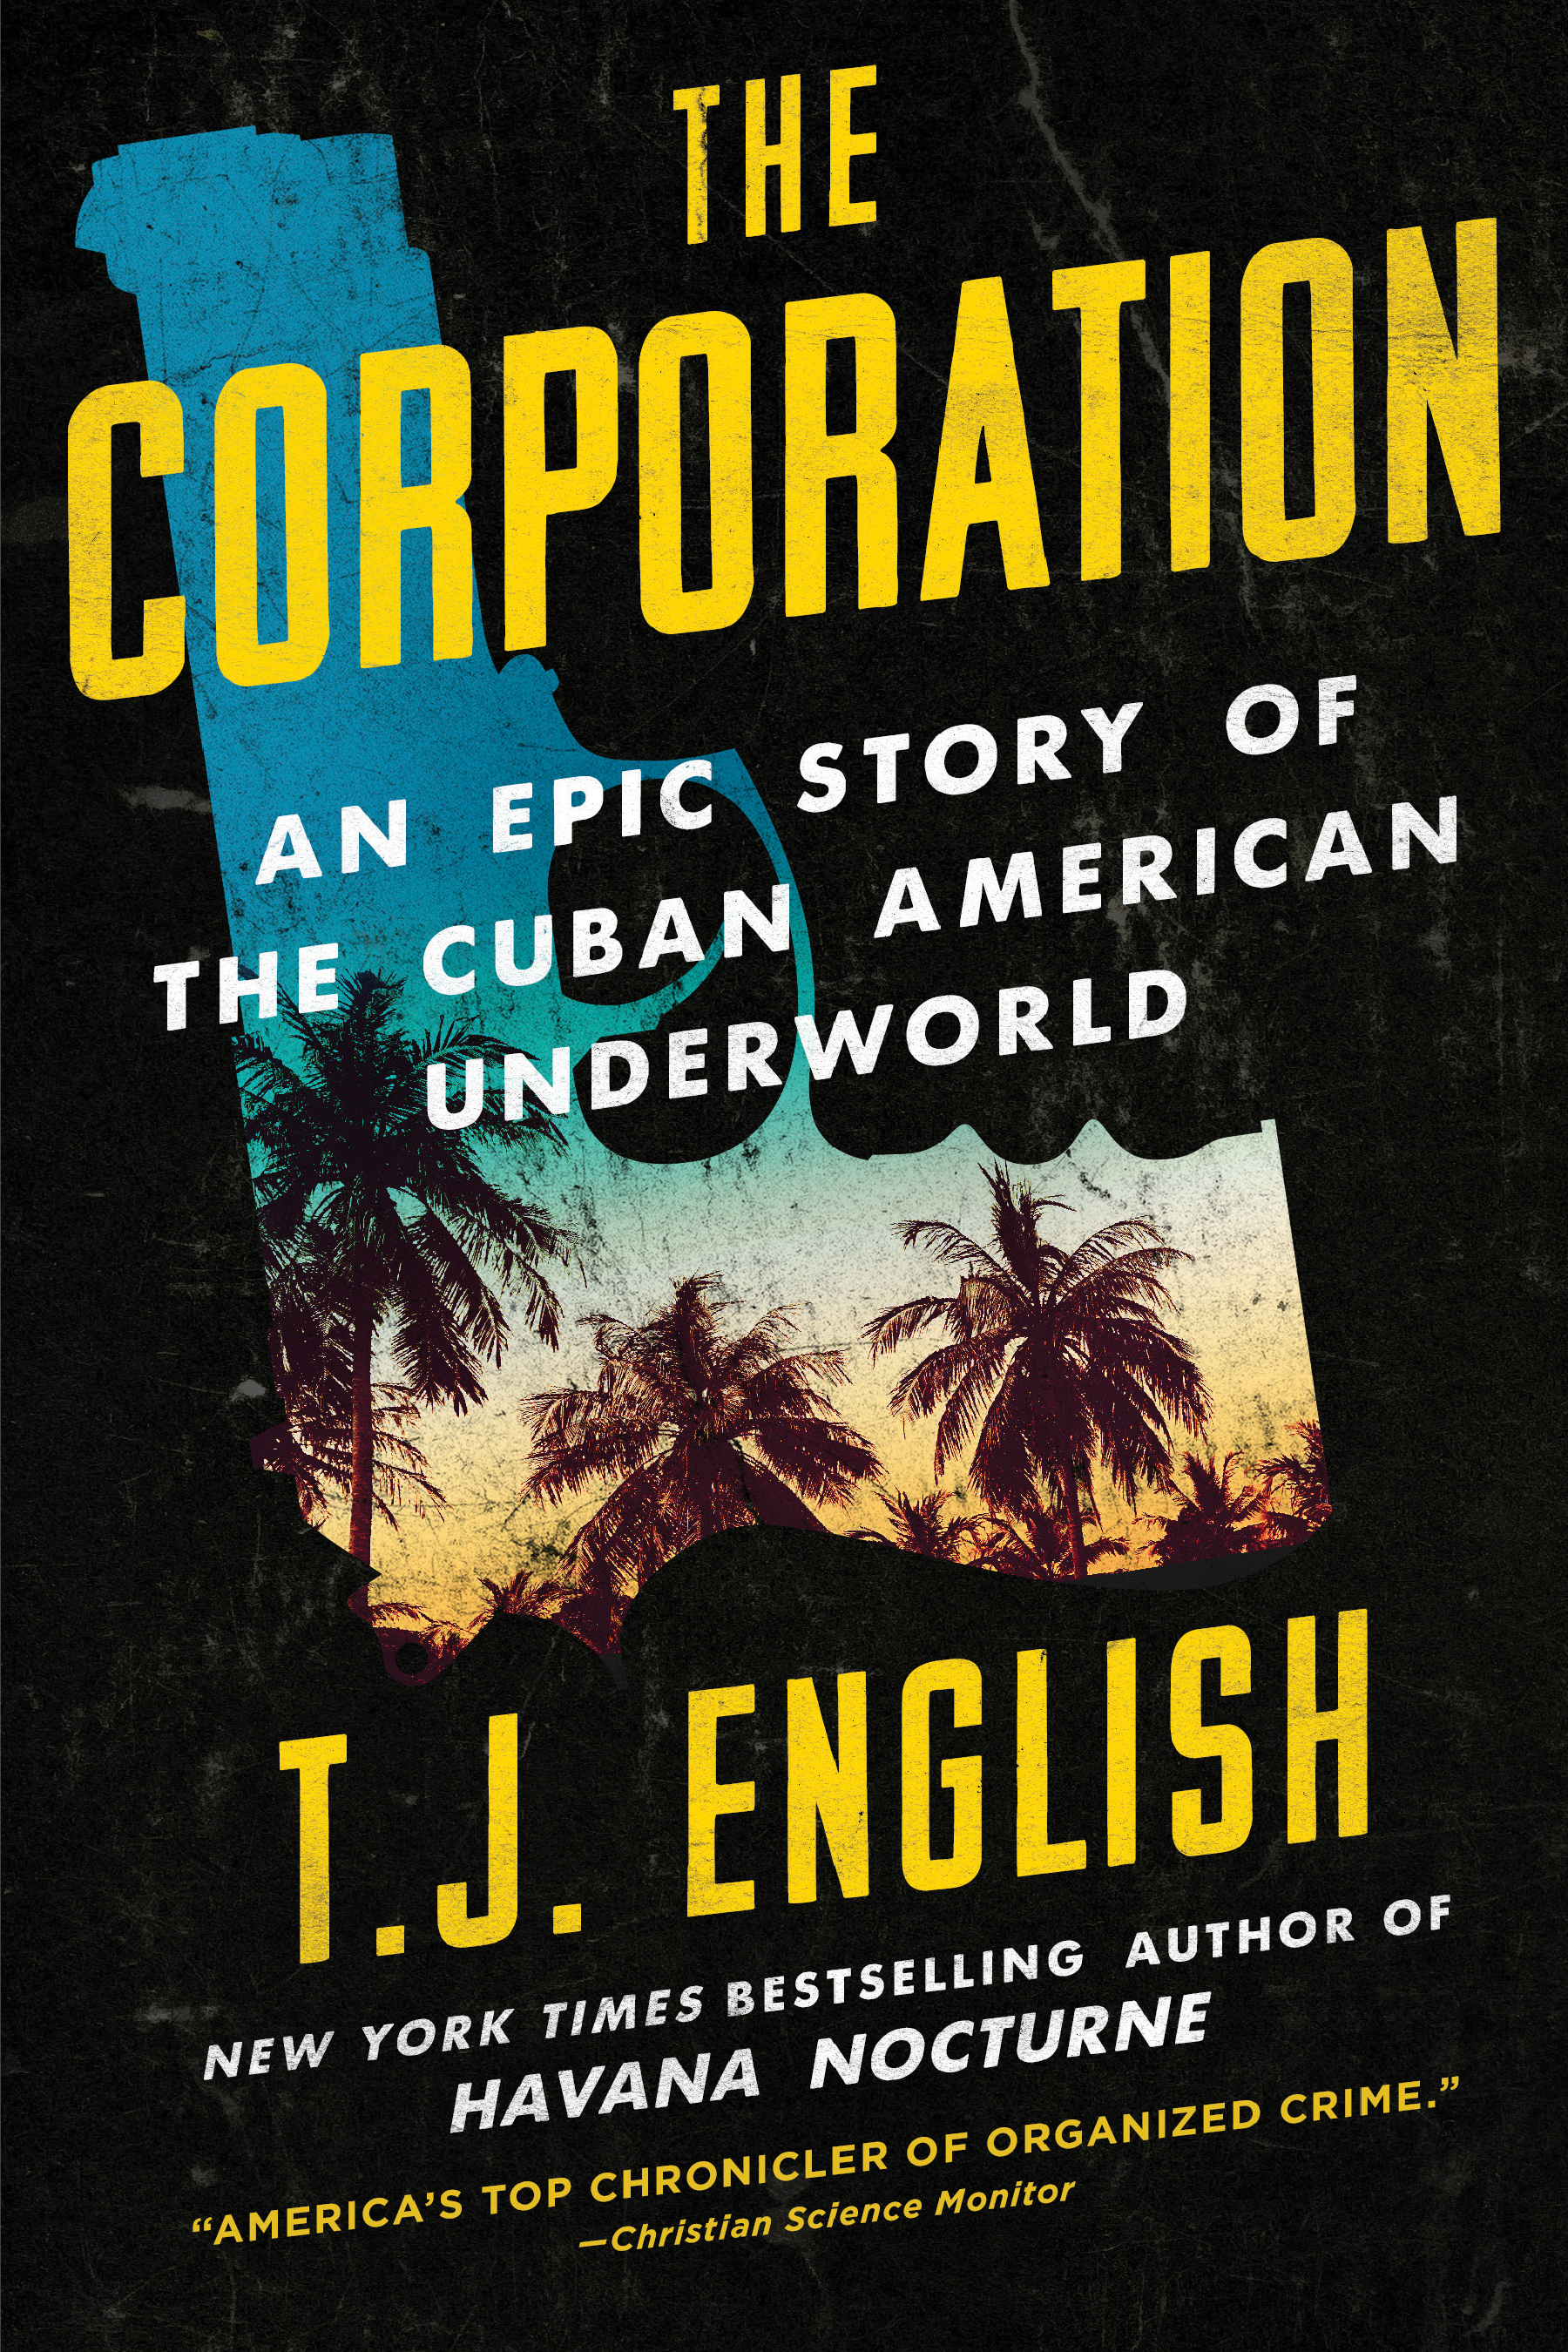 The Corporation: An Epic Story of the Cuban American Underworld